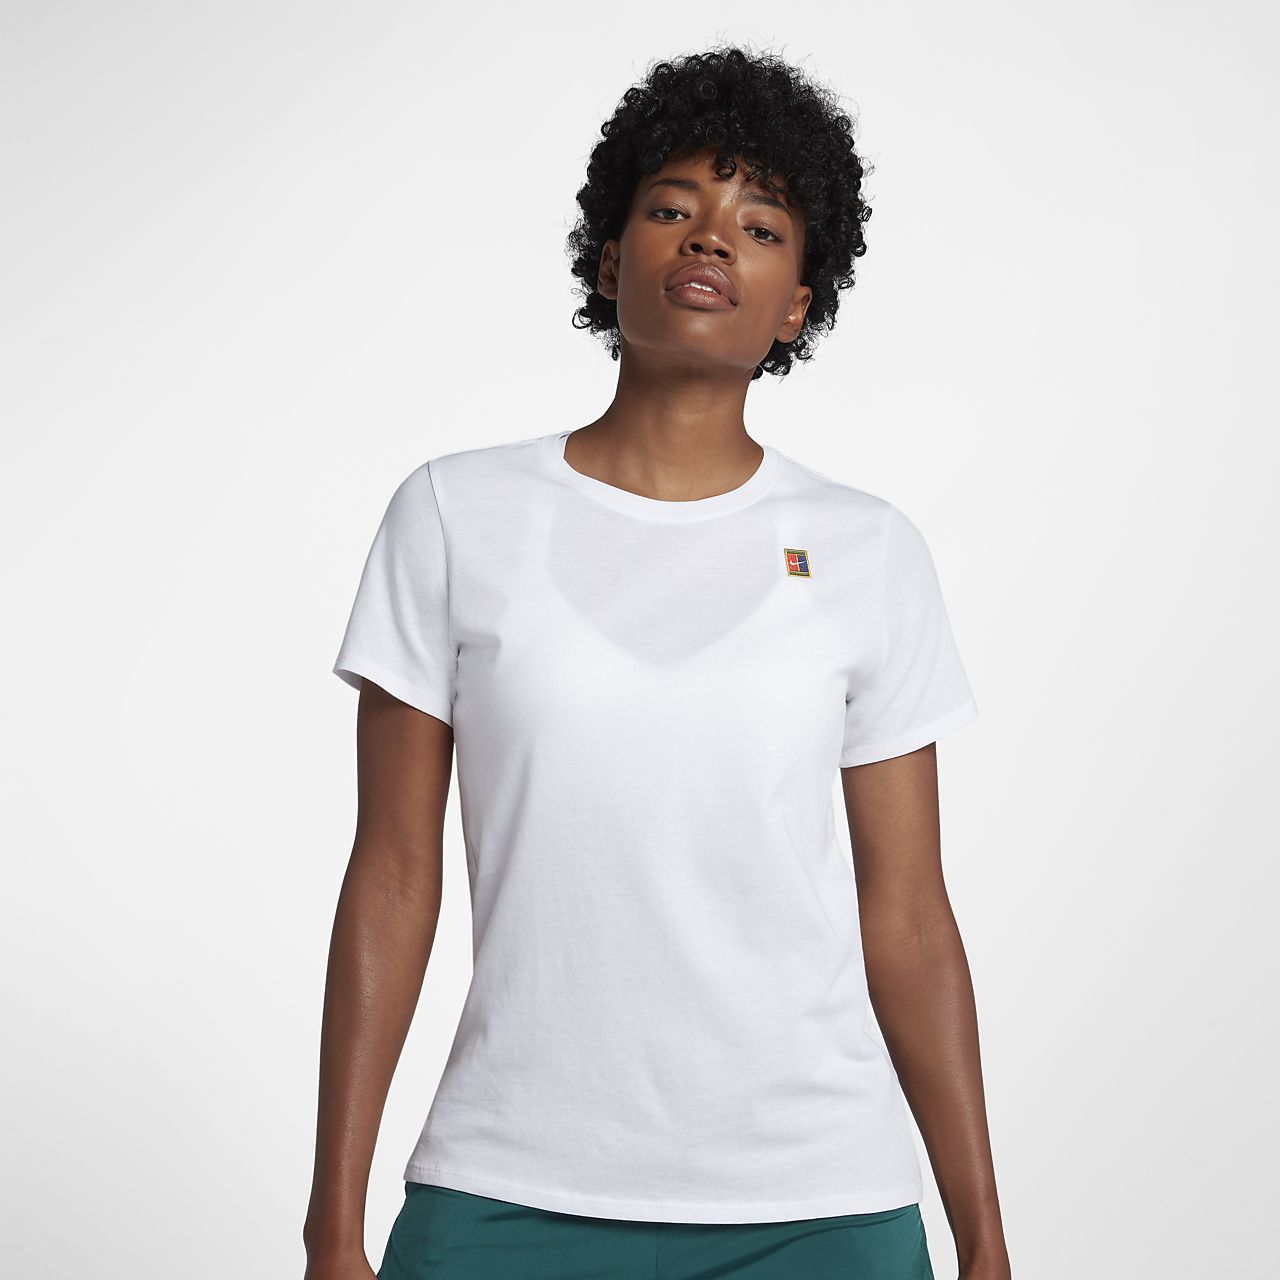 release info on cheaper best website NikeCourt Women's Tennis T-Shirt